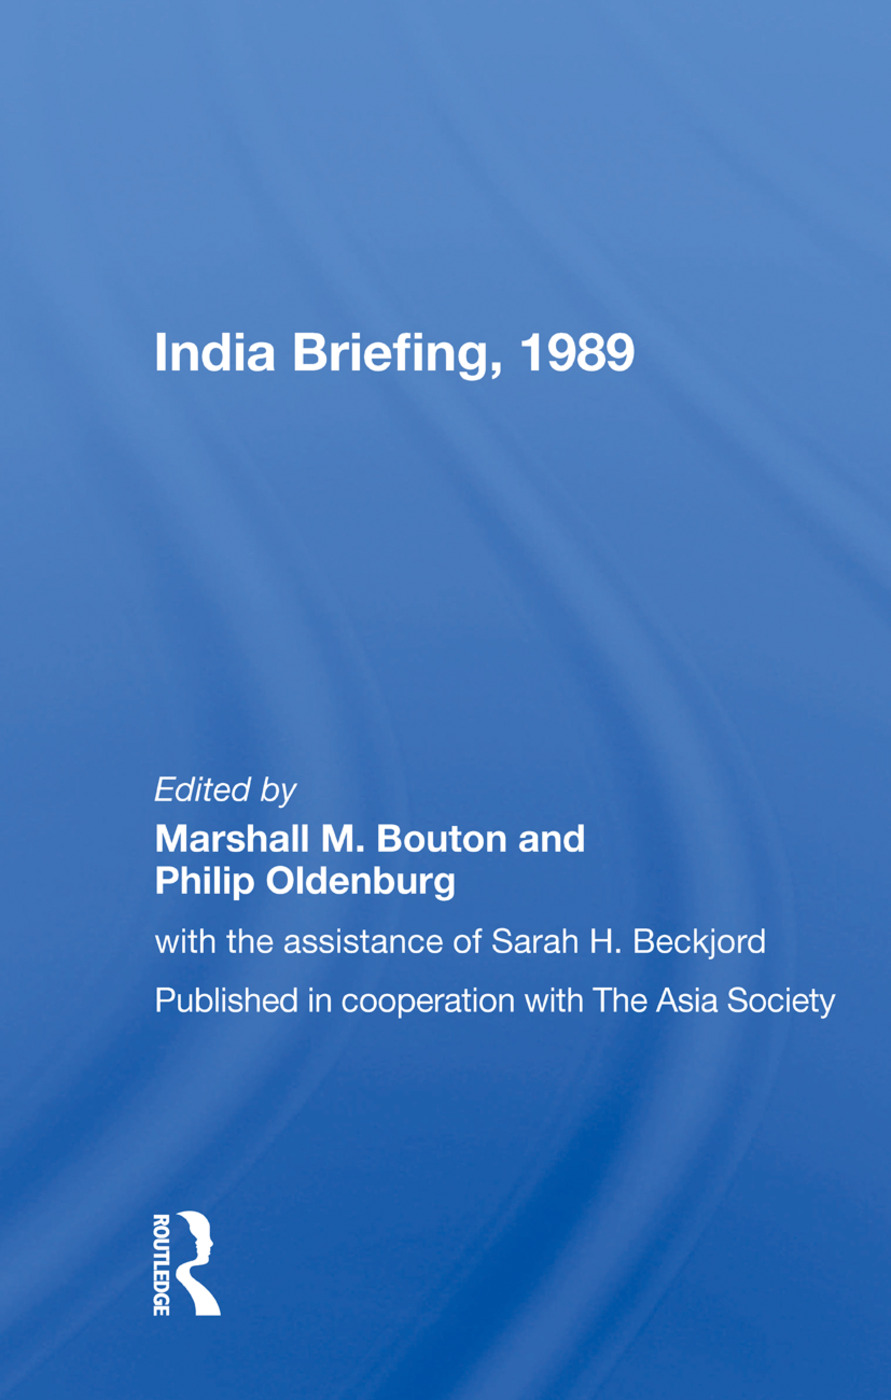 India Briefing, 1989 book cover